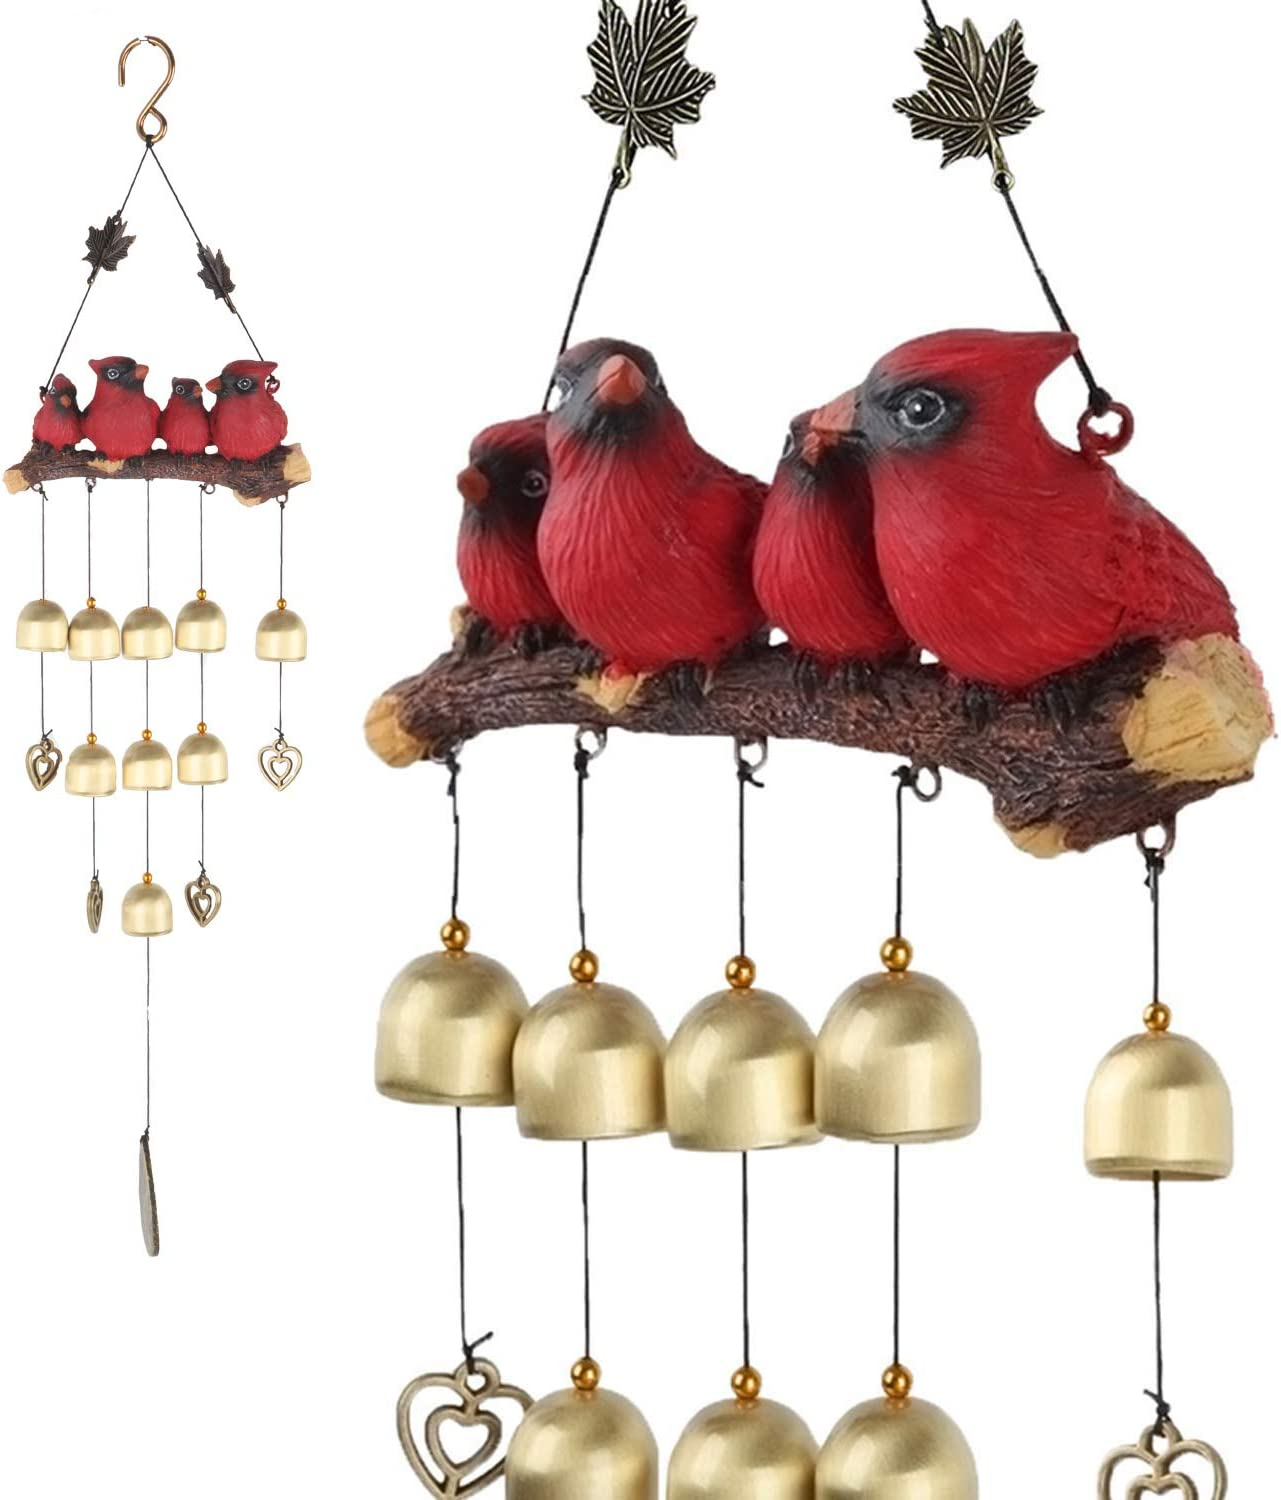 Gardenvy Cardinal Bird Wind Chime, Red Bird Bell Wind Chimes Outdoor Decorations, Garden Backyard Church Hanging Decor, Red